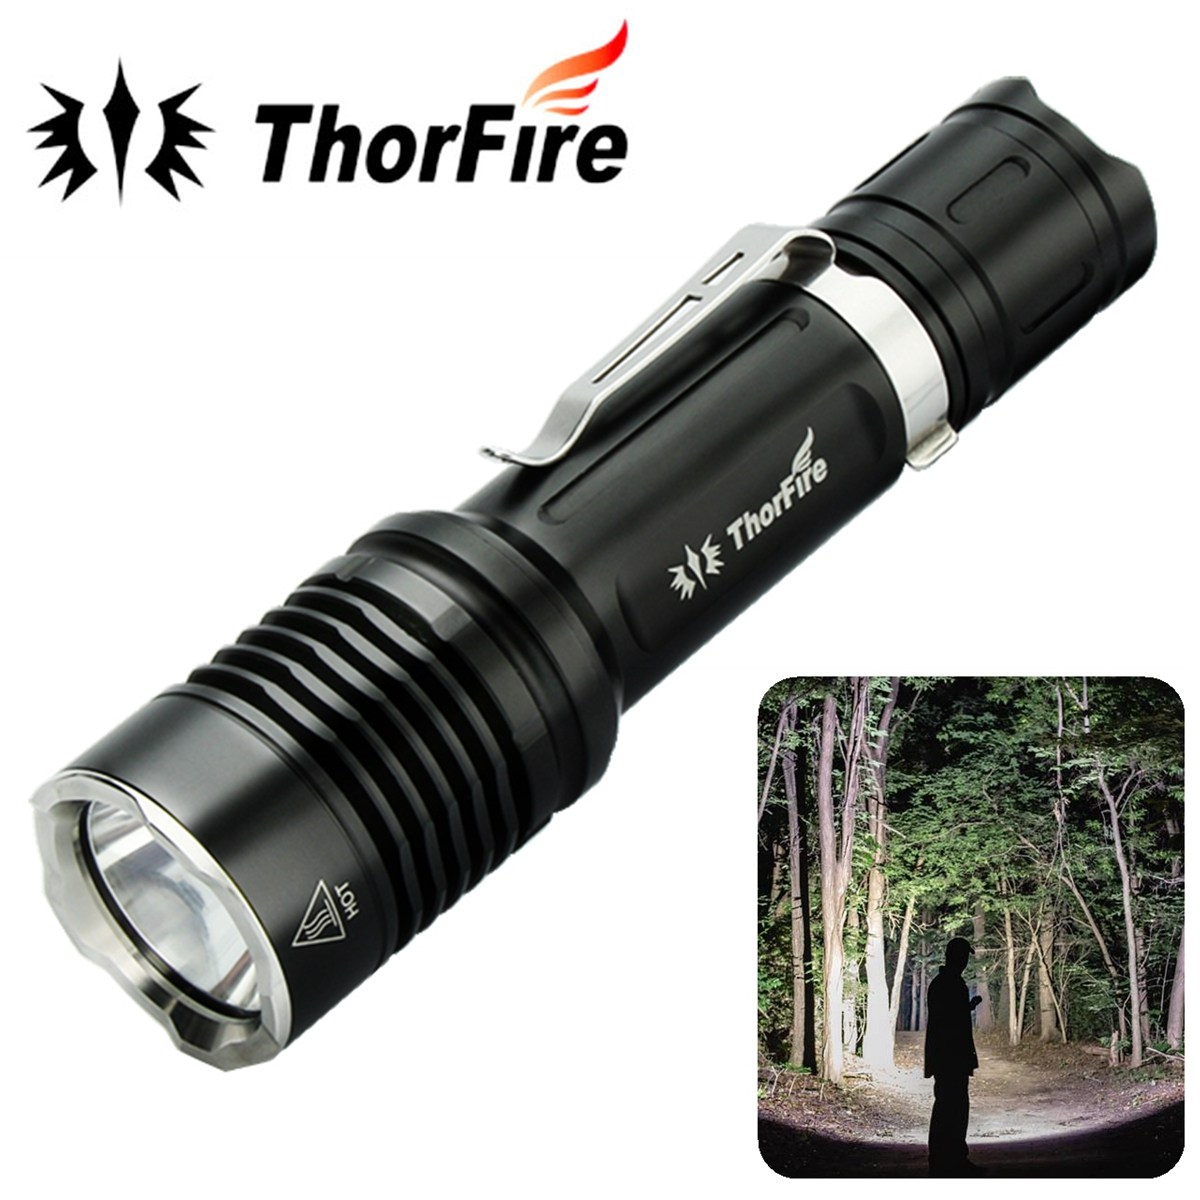 ThorFire VG10S XPL2 Ultra Bright Tactical Powerful LED Flashlight 1100LM 5 Modes Camping Hiking Hunting torch 18650 battery super bright tactical 3 modes 18000 lumen 9x xm l l2 led powerful flashlight torch for hiking camping hunting battery charger